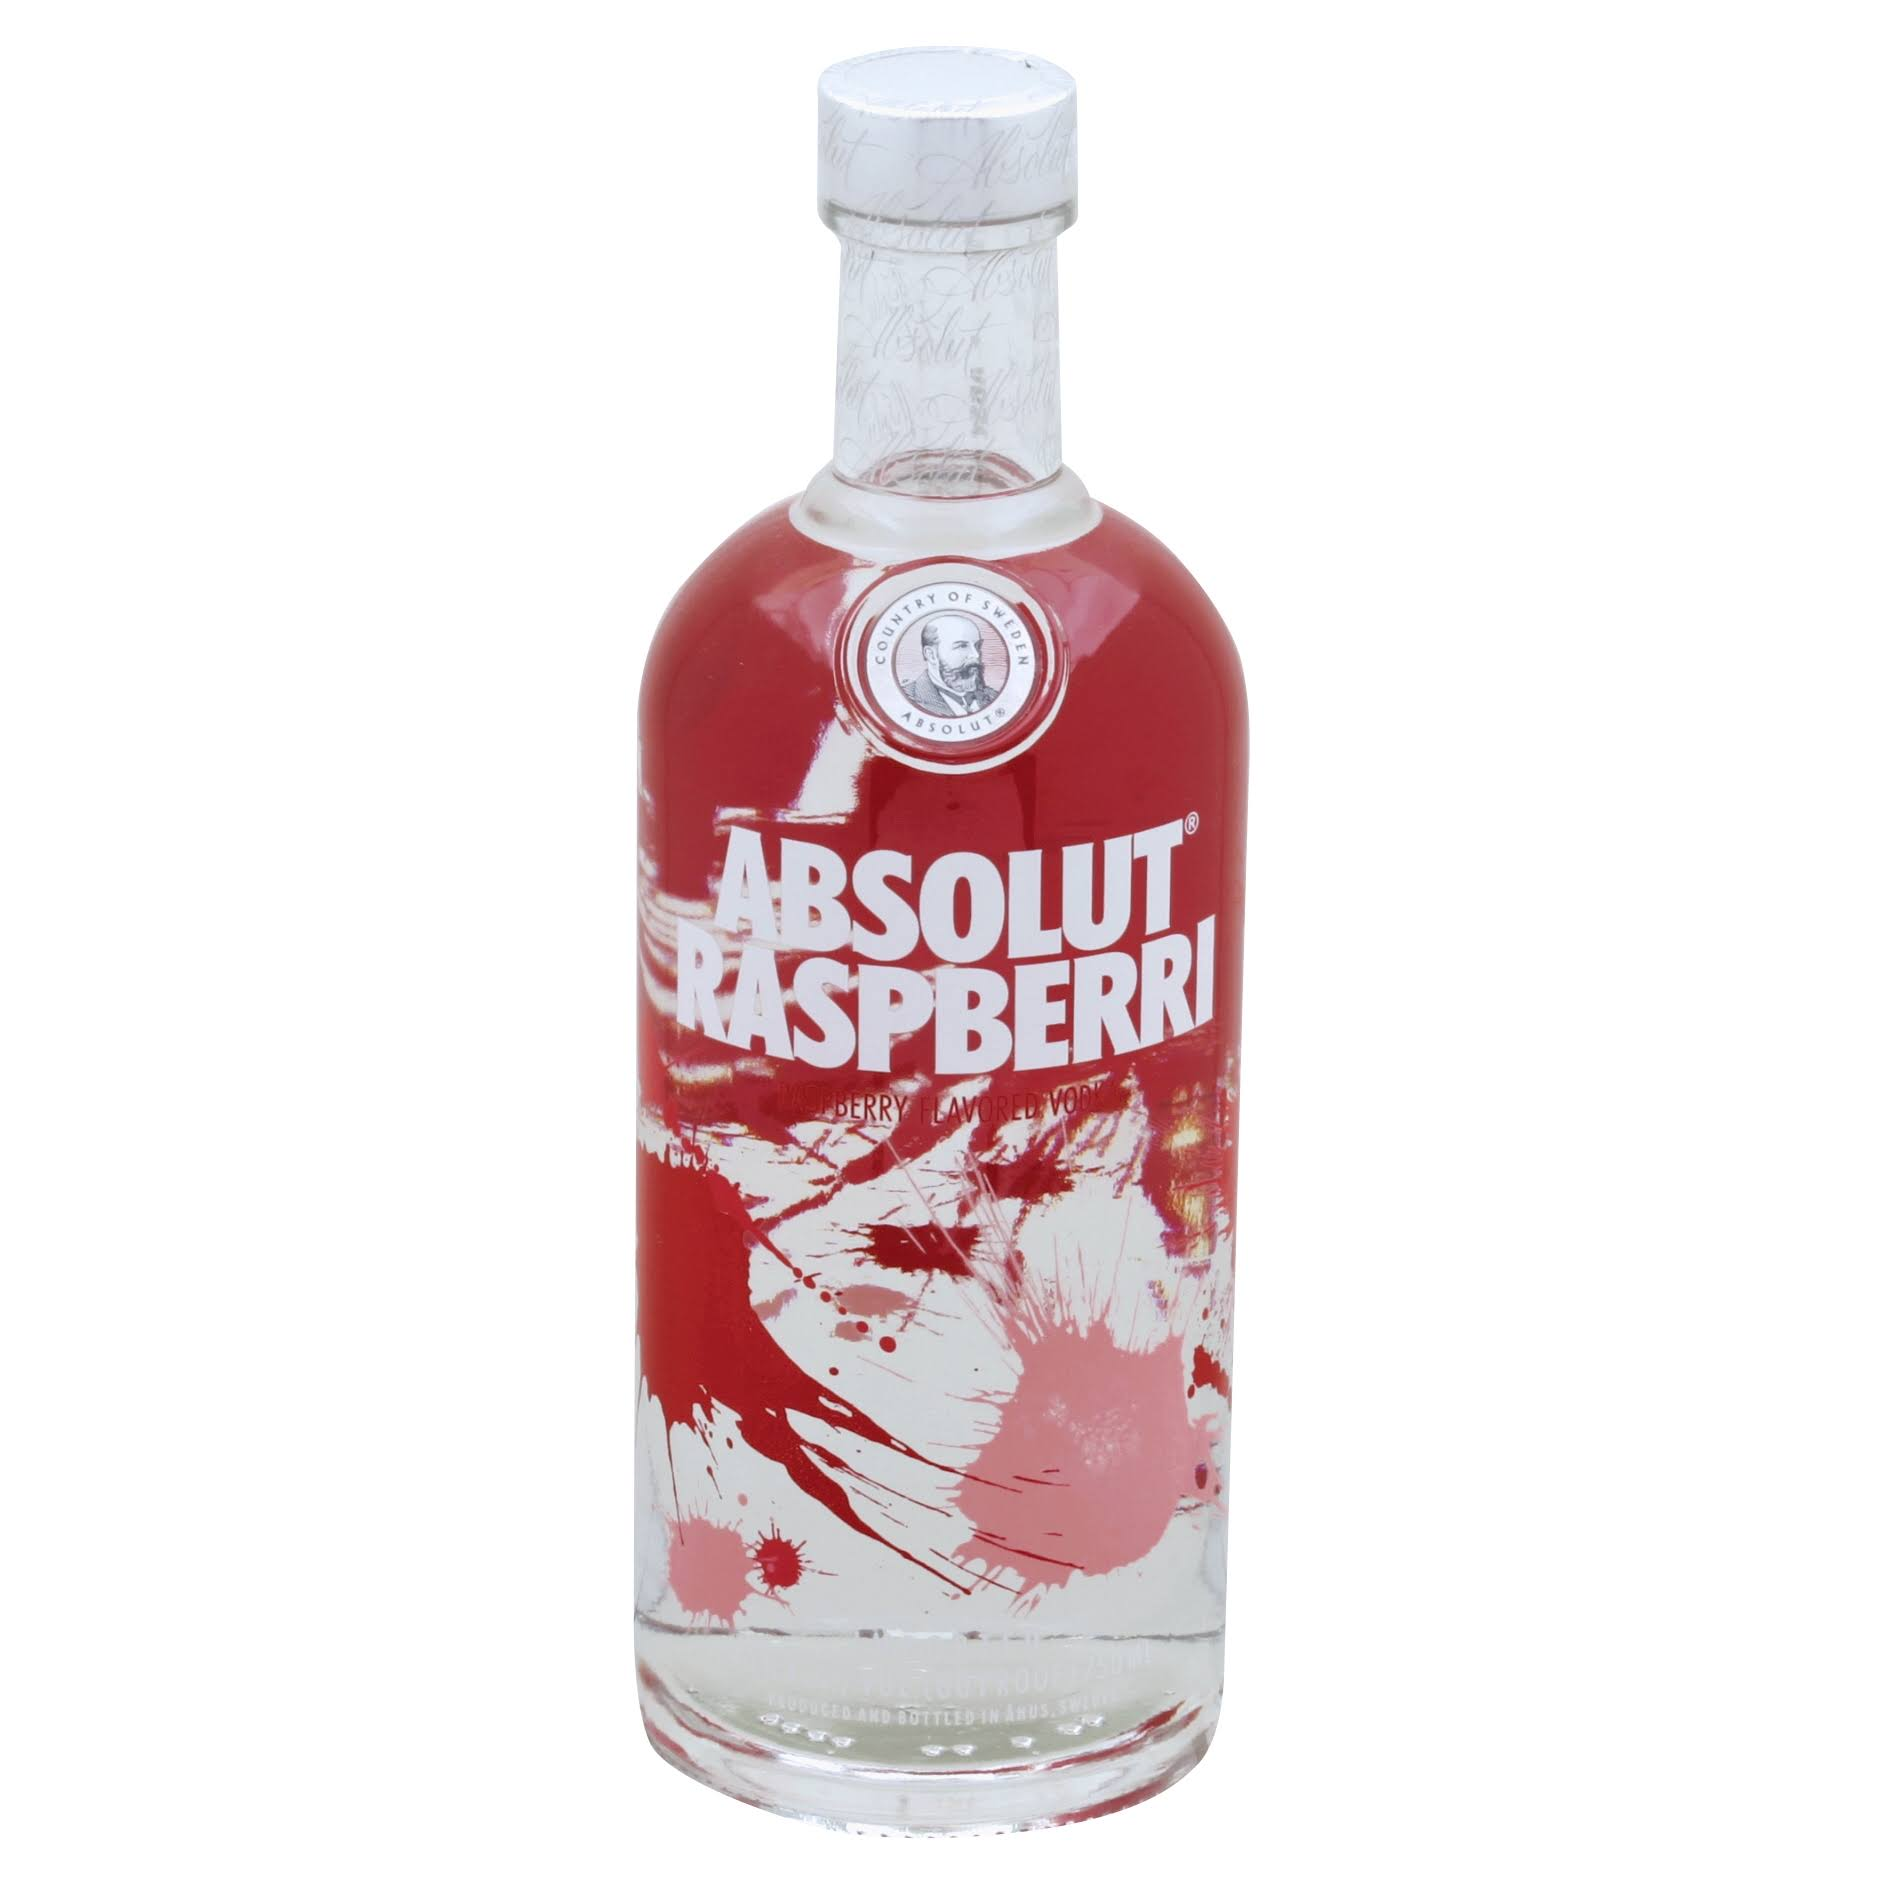 ABSOLUT Vodka - Raspberri, 750ml